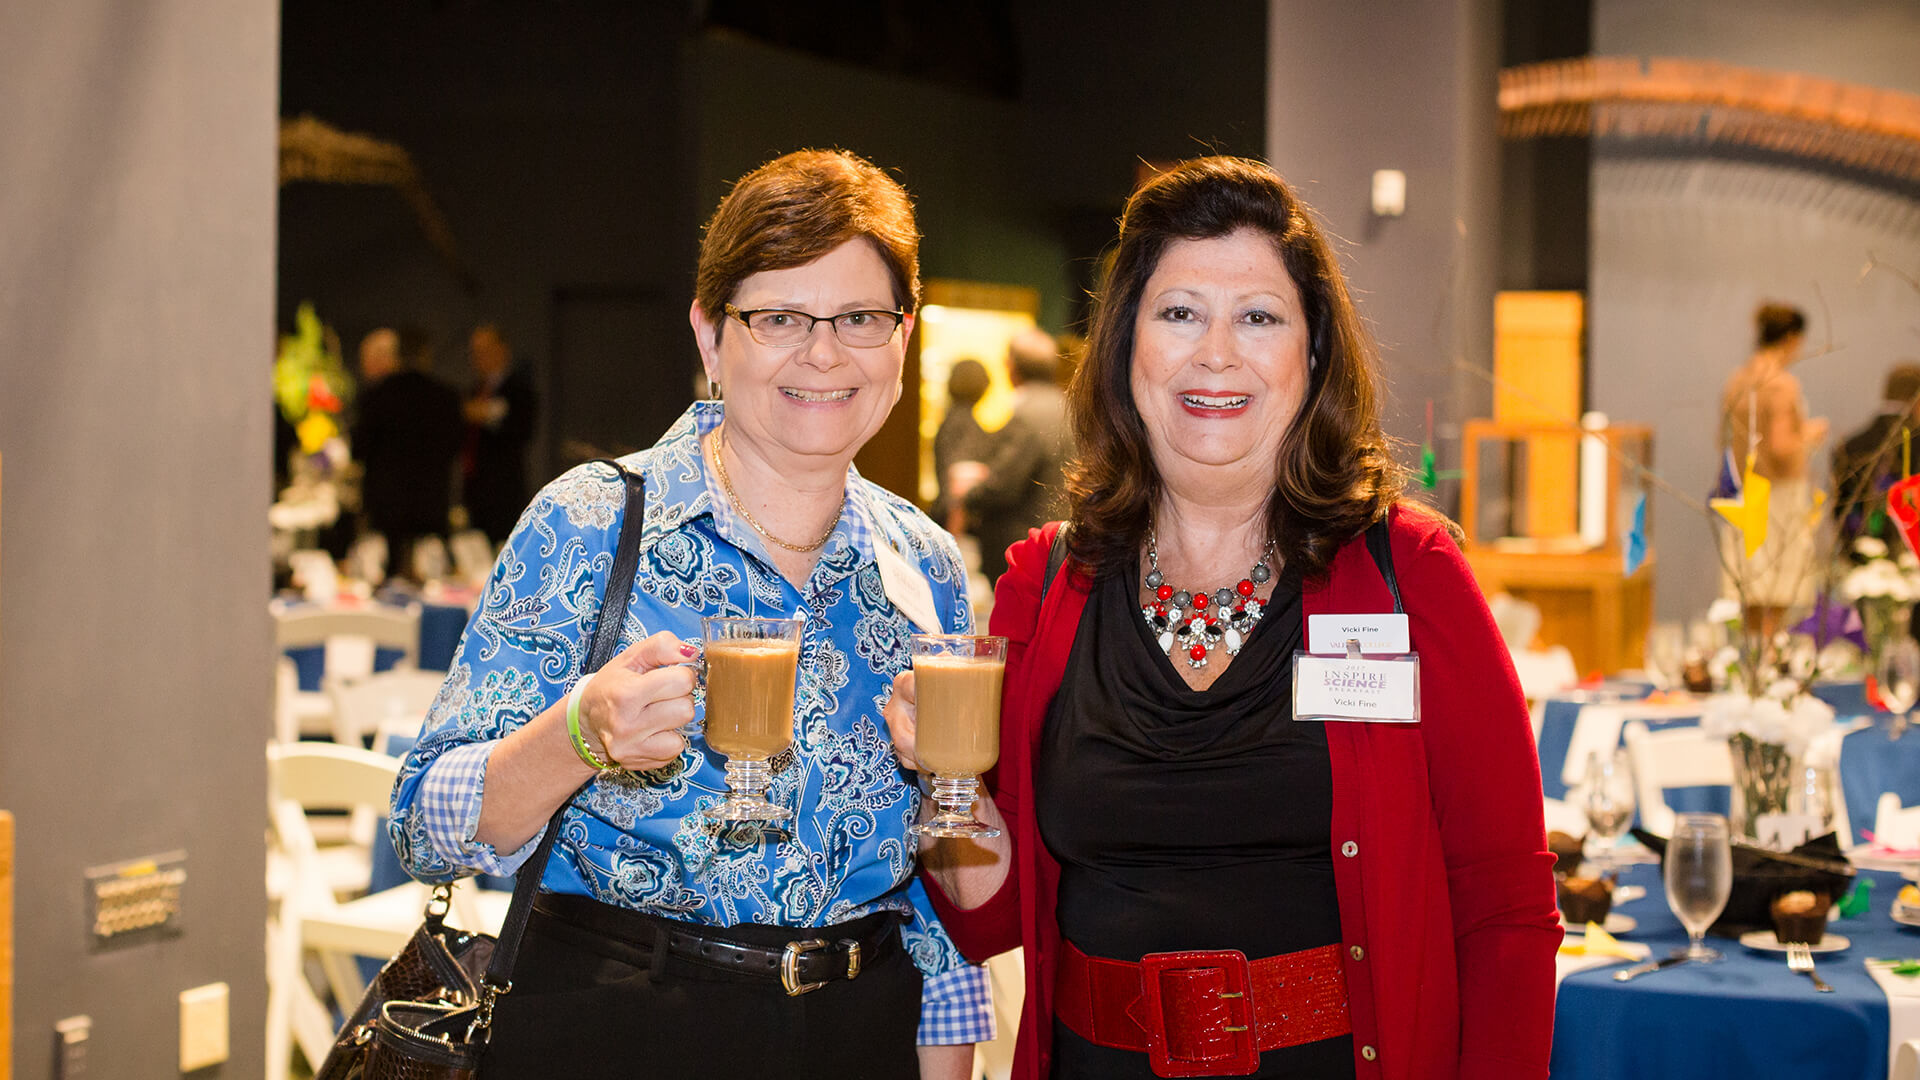 Women drink coffee together at the Inspire Science Breakfast.